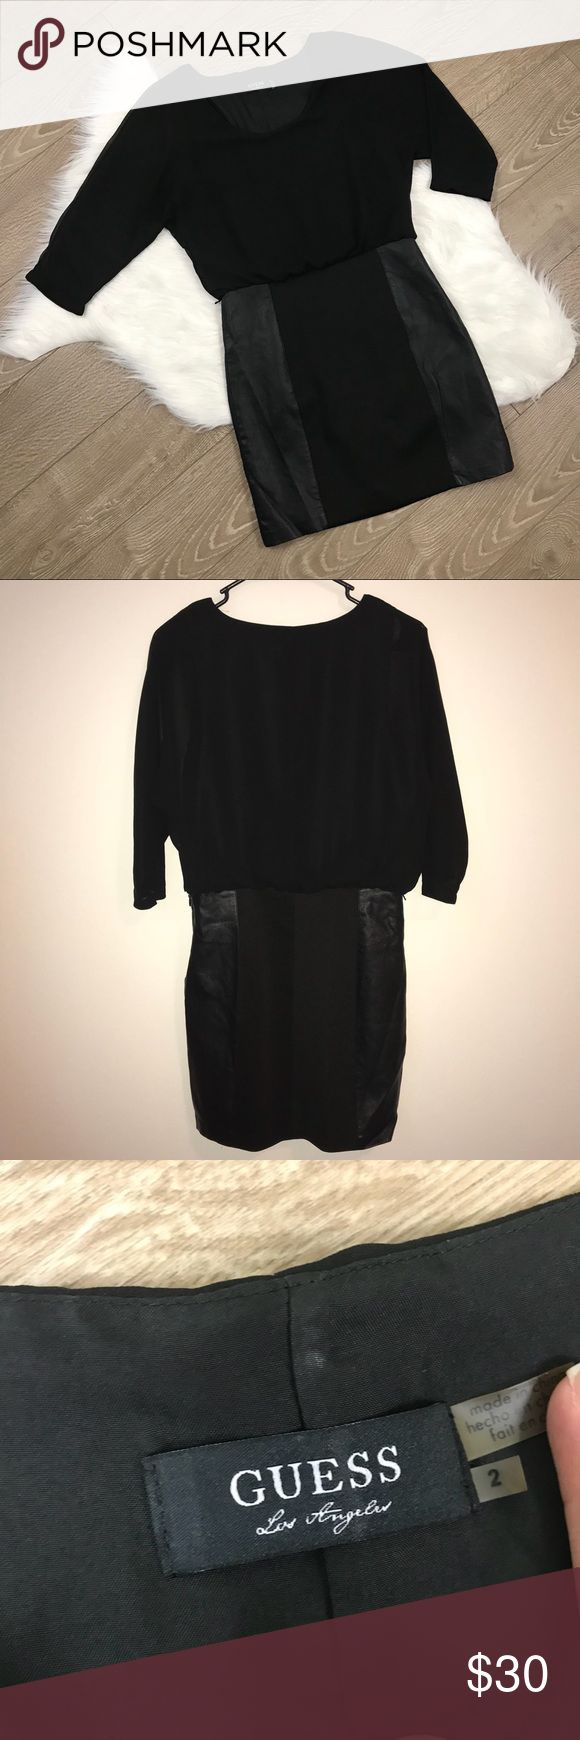 GUESS Black Mesh Half Sleeve Dress GUESS Black Mesh Half Sleeve Dress   • Size 2 • In excellent condition; no stains, holes, or flaws.  • Faux Leather Side Panels  • Save 10% on bundles of 2 or more items Guess Dresses Mini